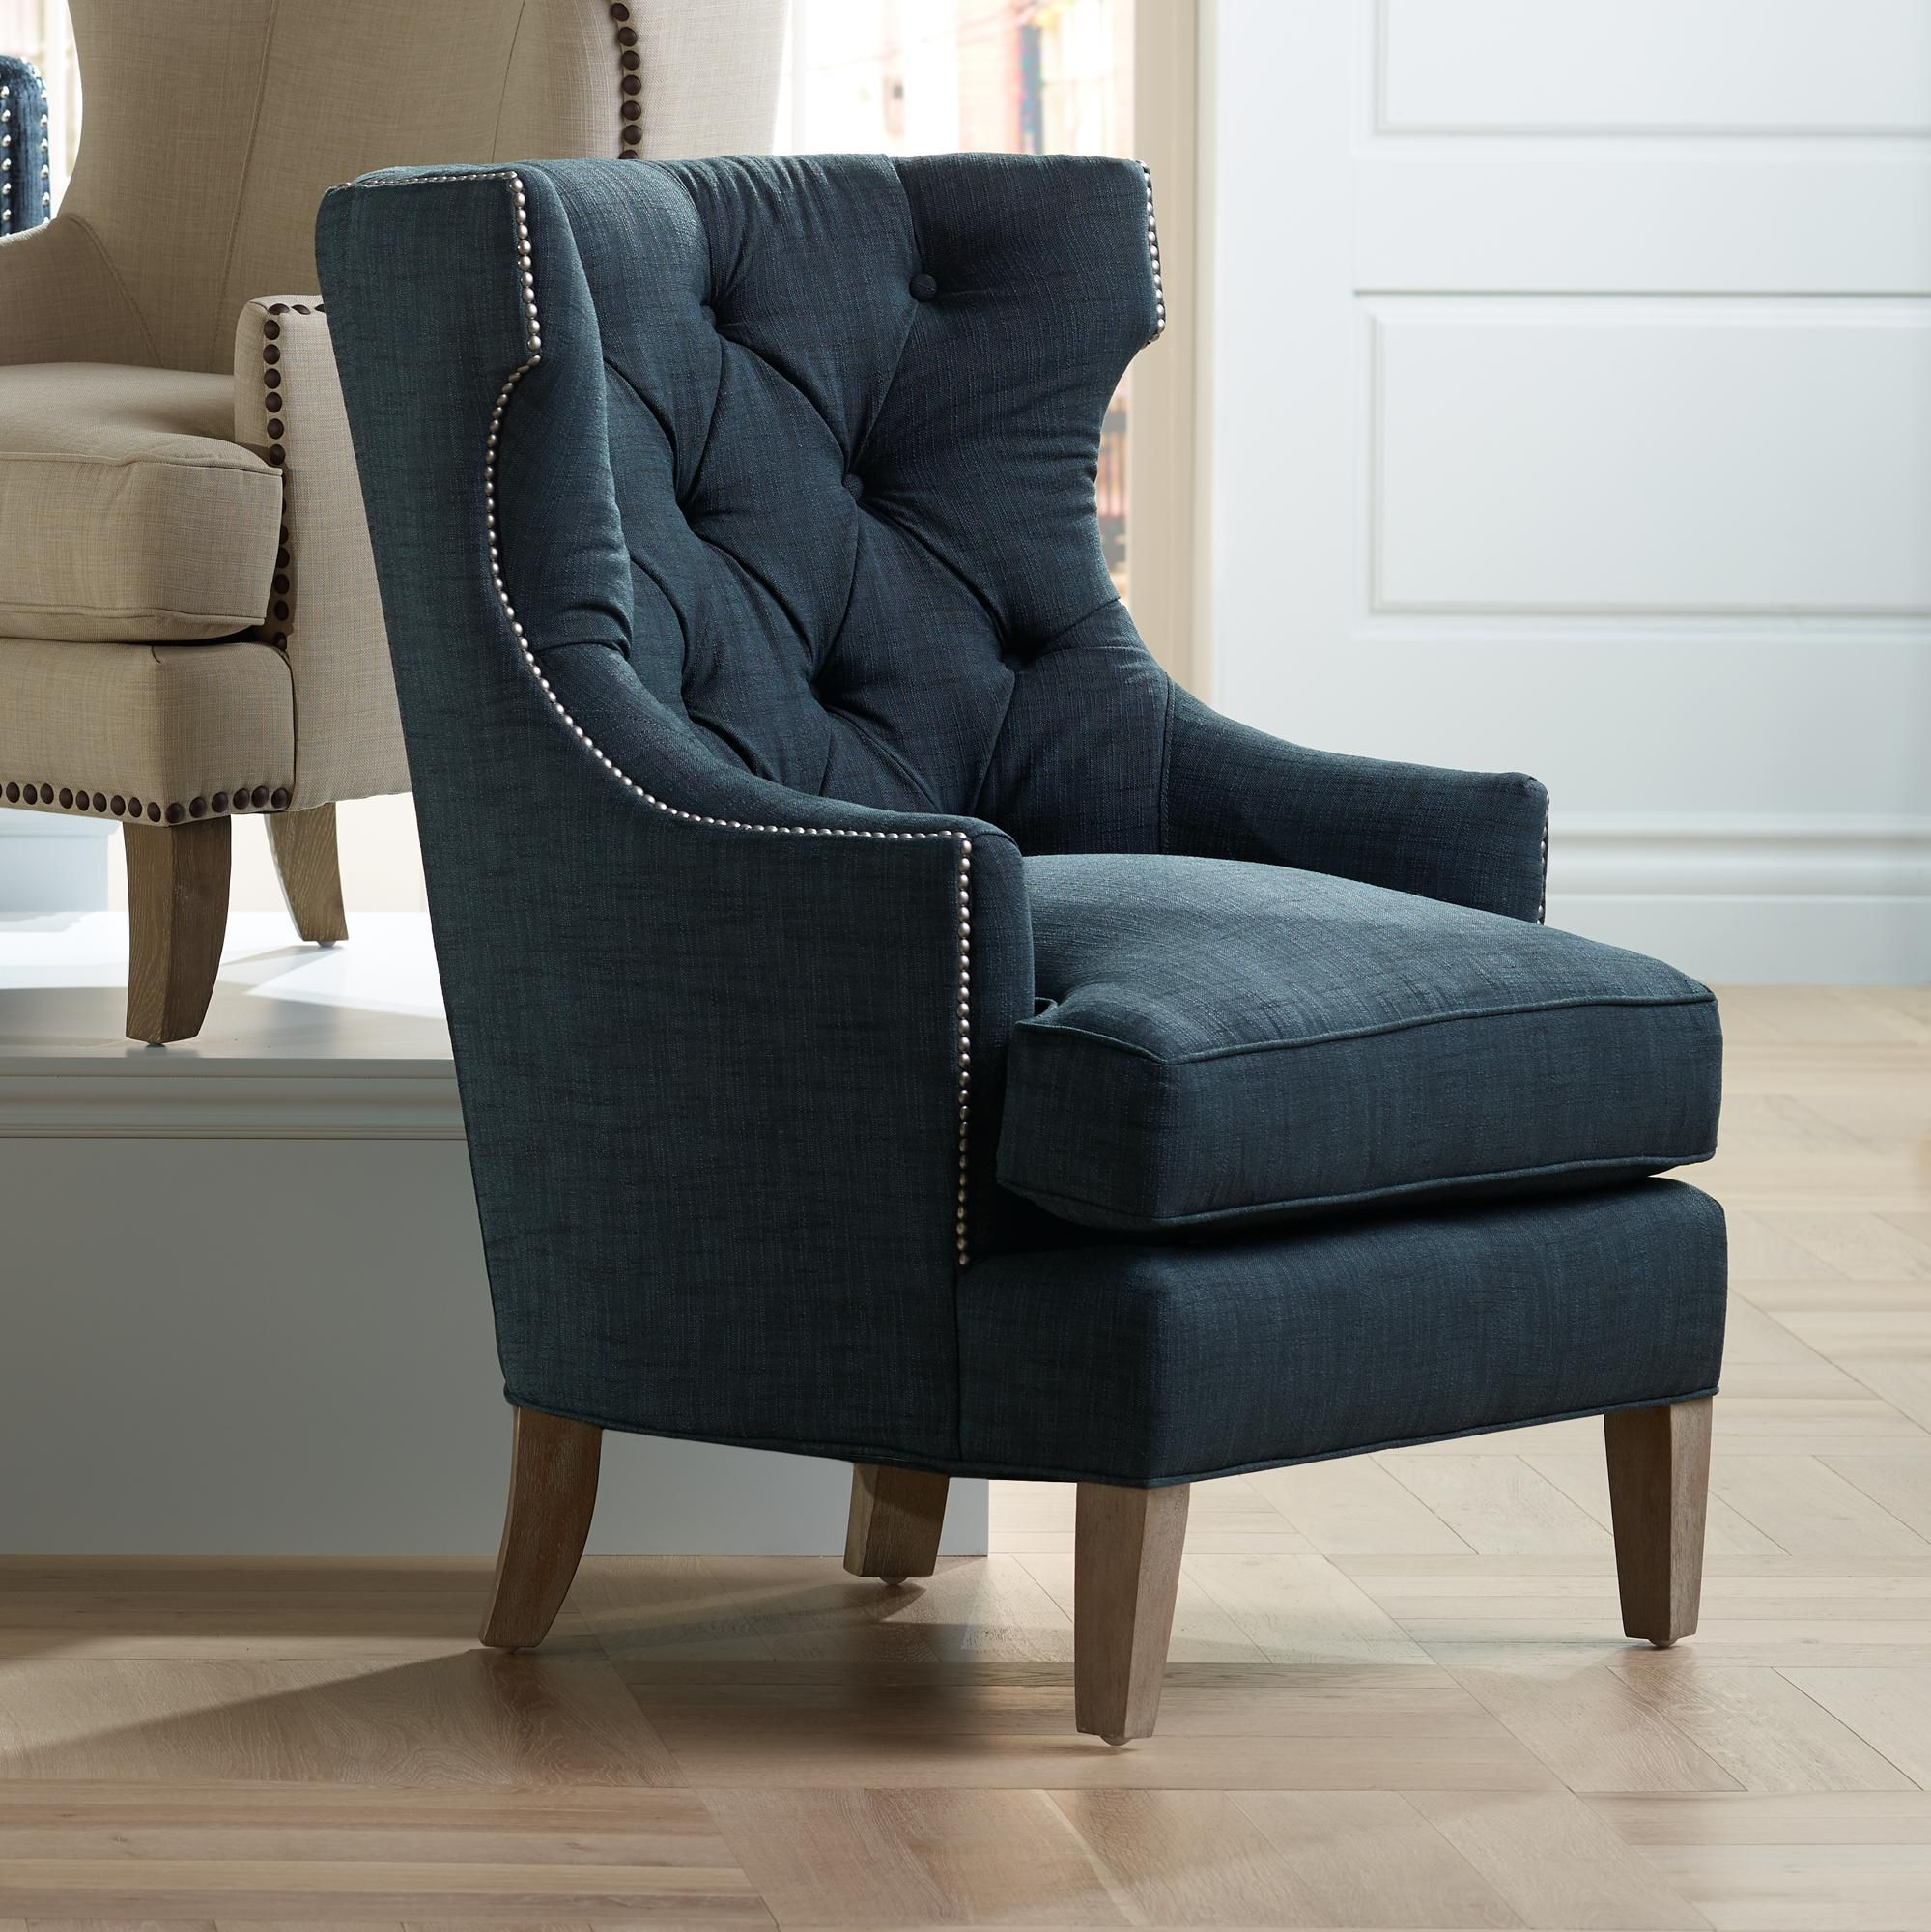 Seating Reese Studio Indigo High Back Accent Chair High Back